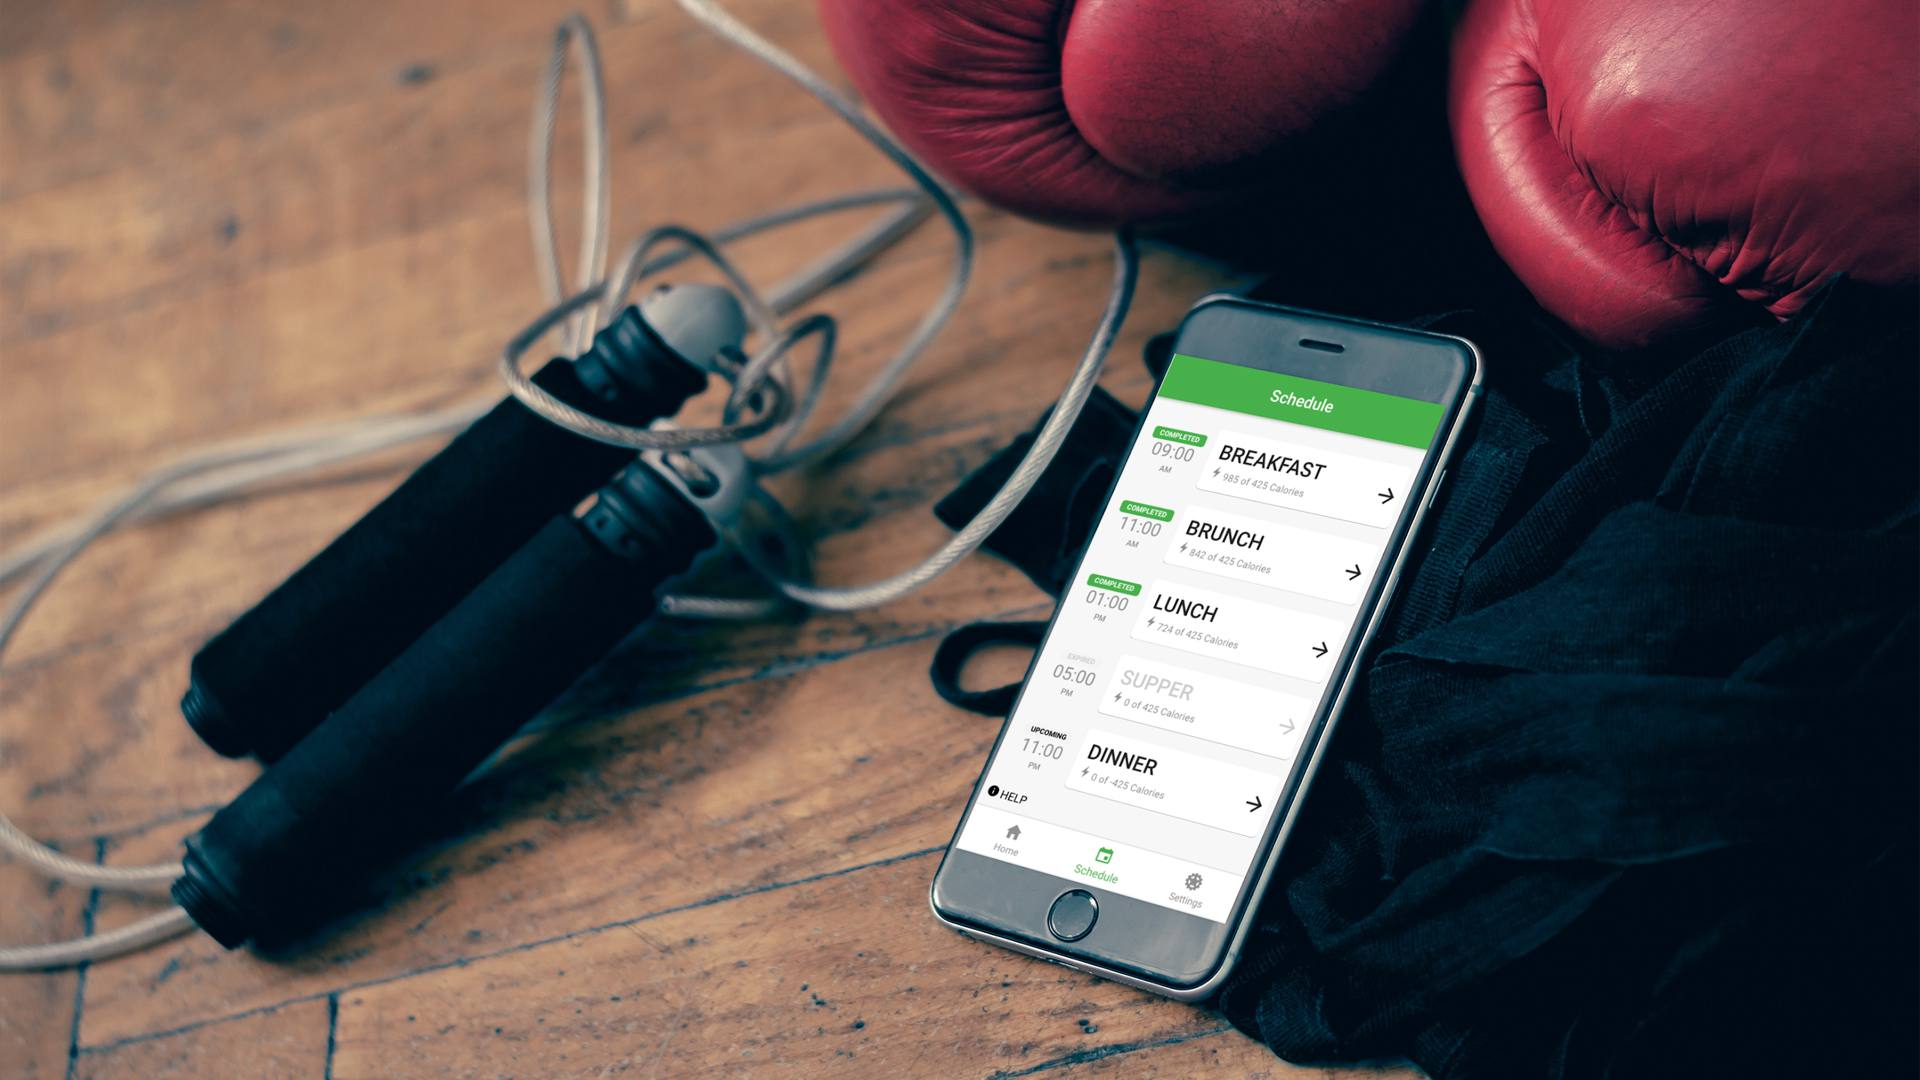 GainGuy app running on iPhone next to skipping rope and boxing gloves